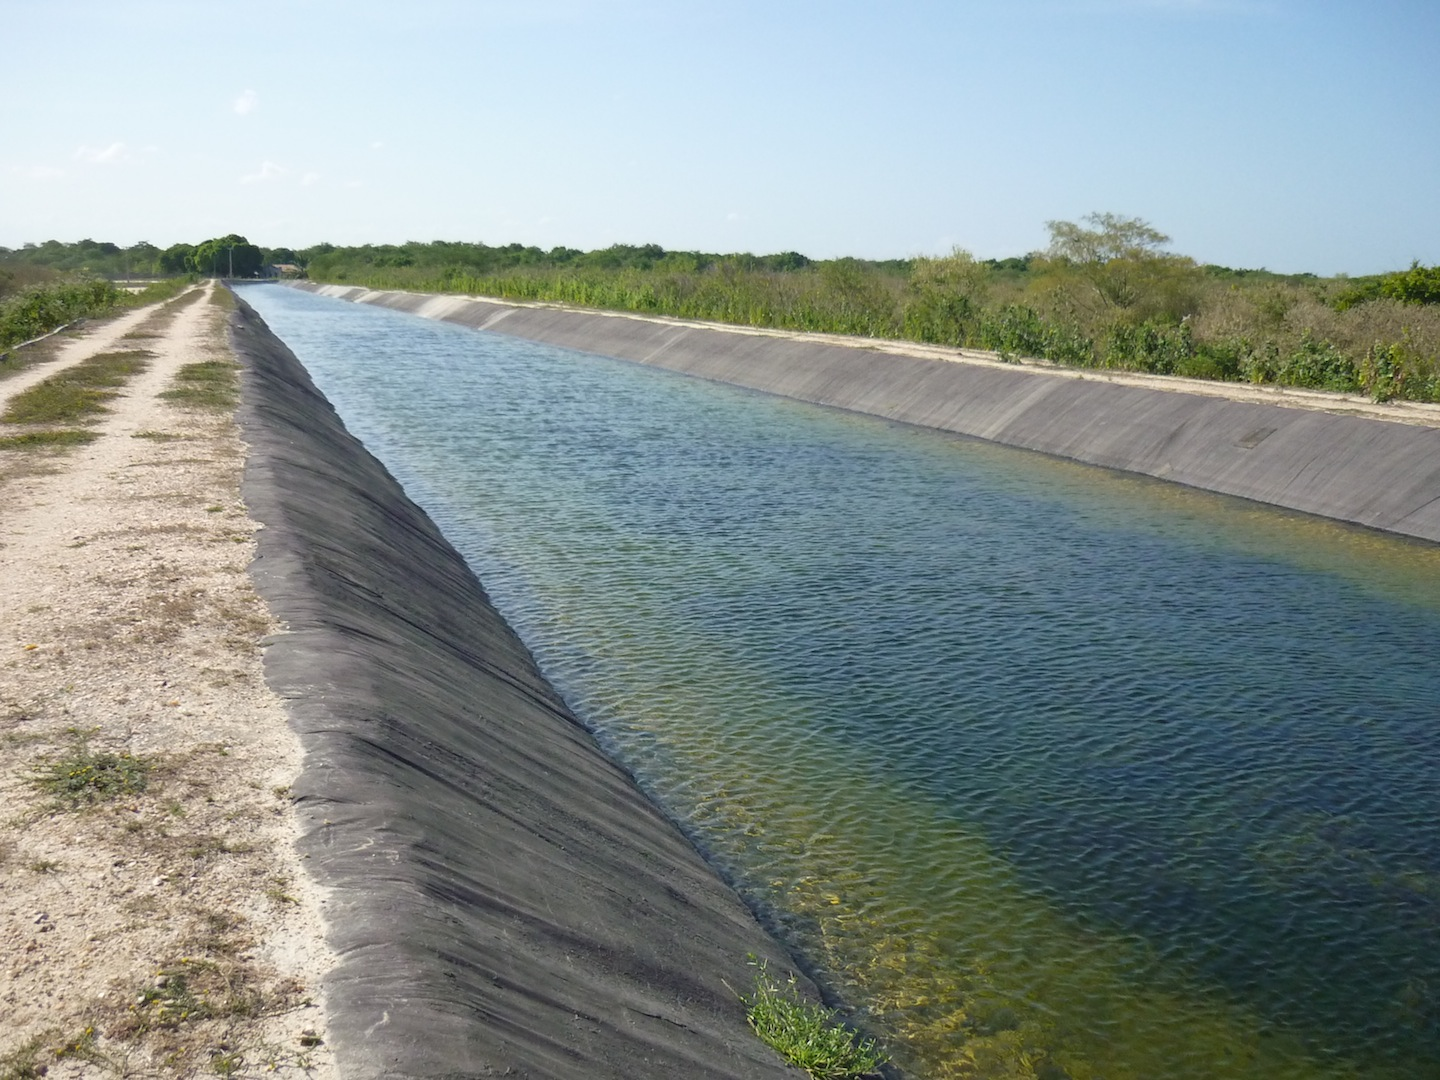 Canal do Trabalhador (waterway) 1, Cascavel, CE